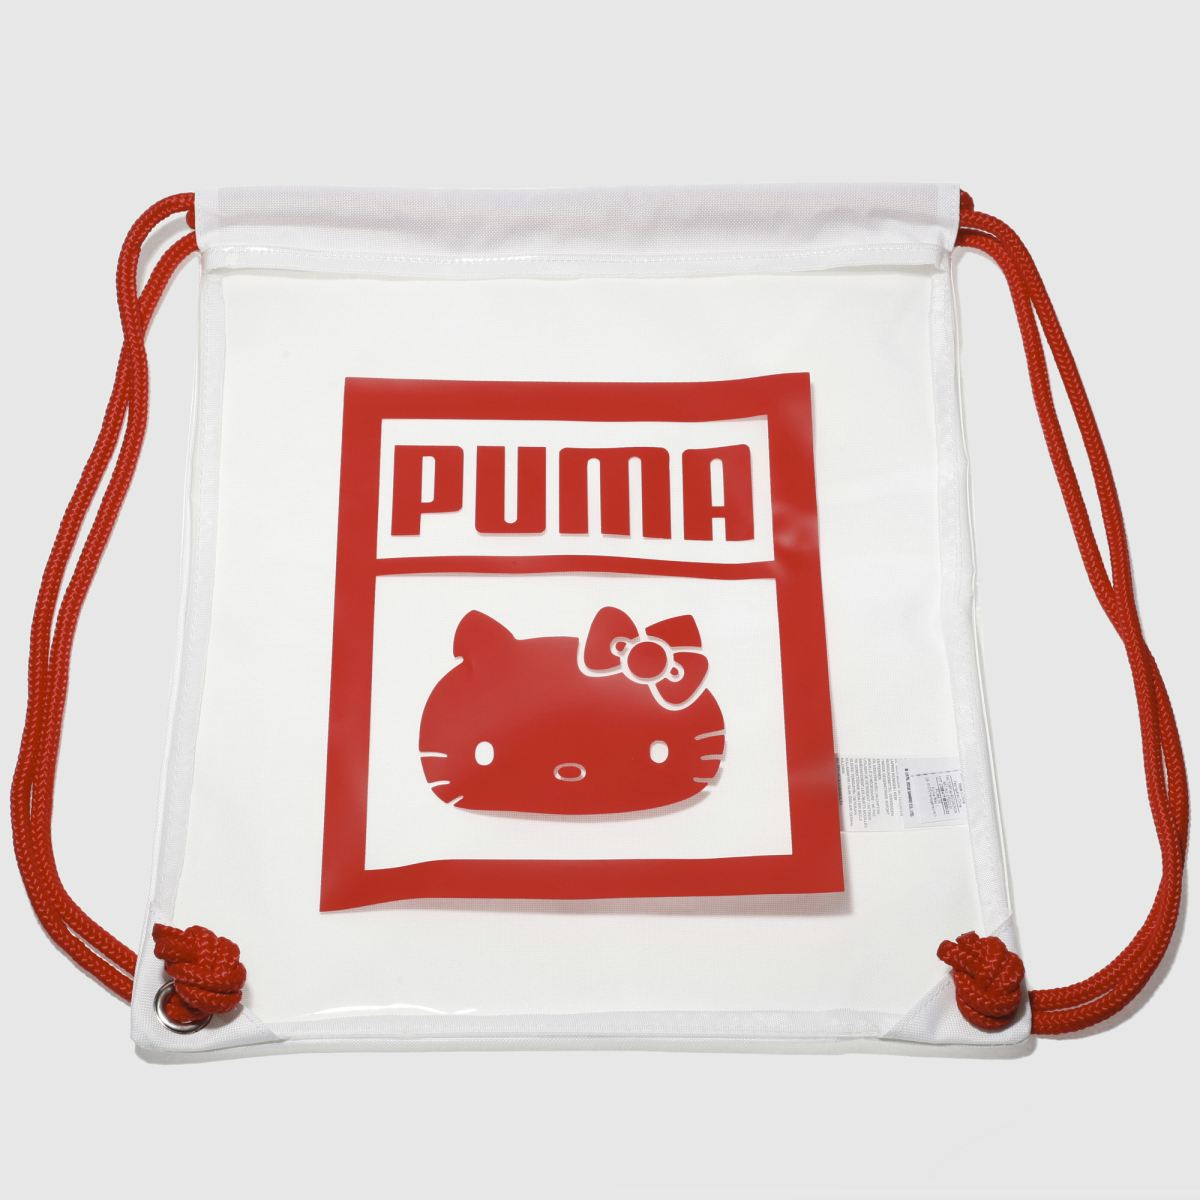 Puma hello kitty gym sack 1